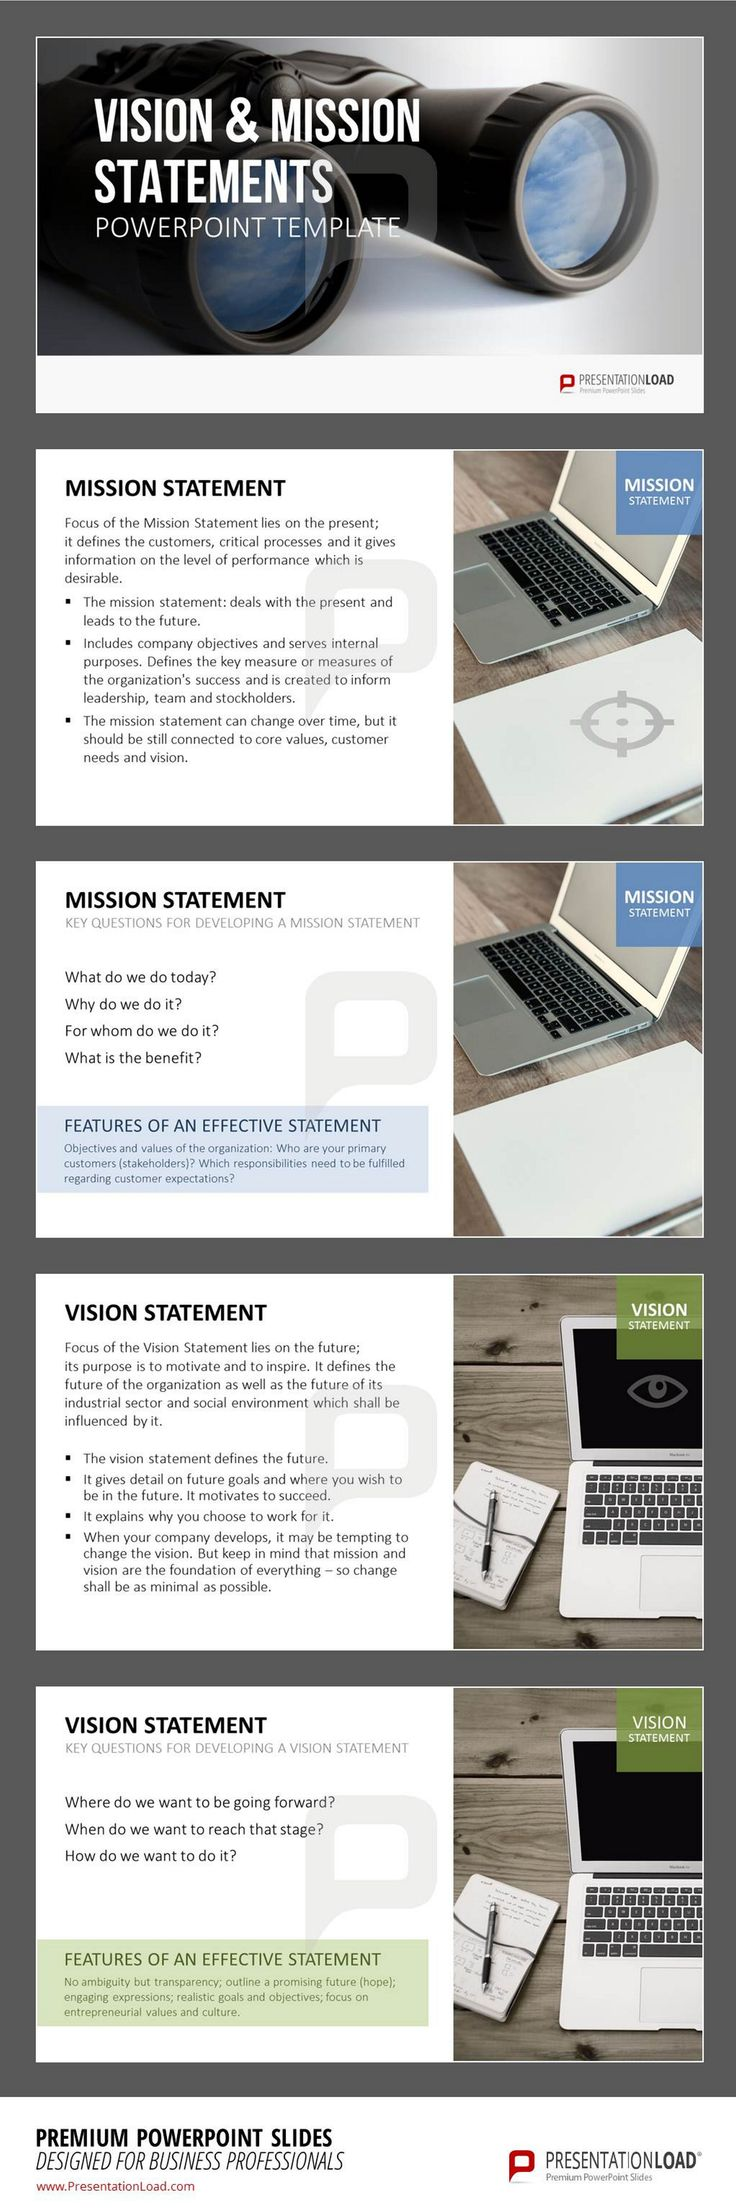 73 best company presentation powerpoint templates images on our new powerpoint set themed upon the topic of vision and mission not only provides you toneelgroepblik Gallery